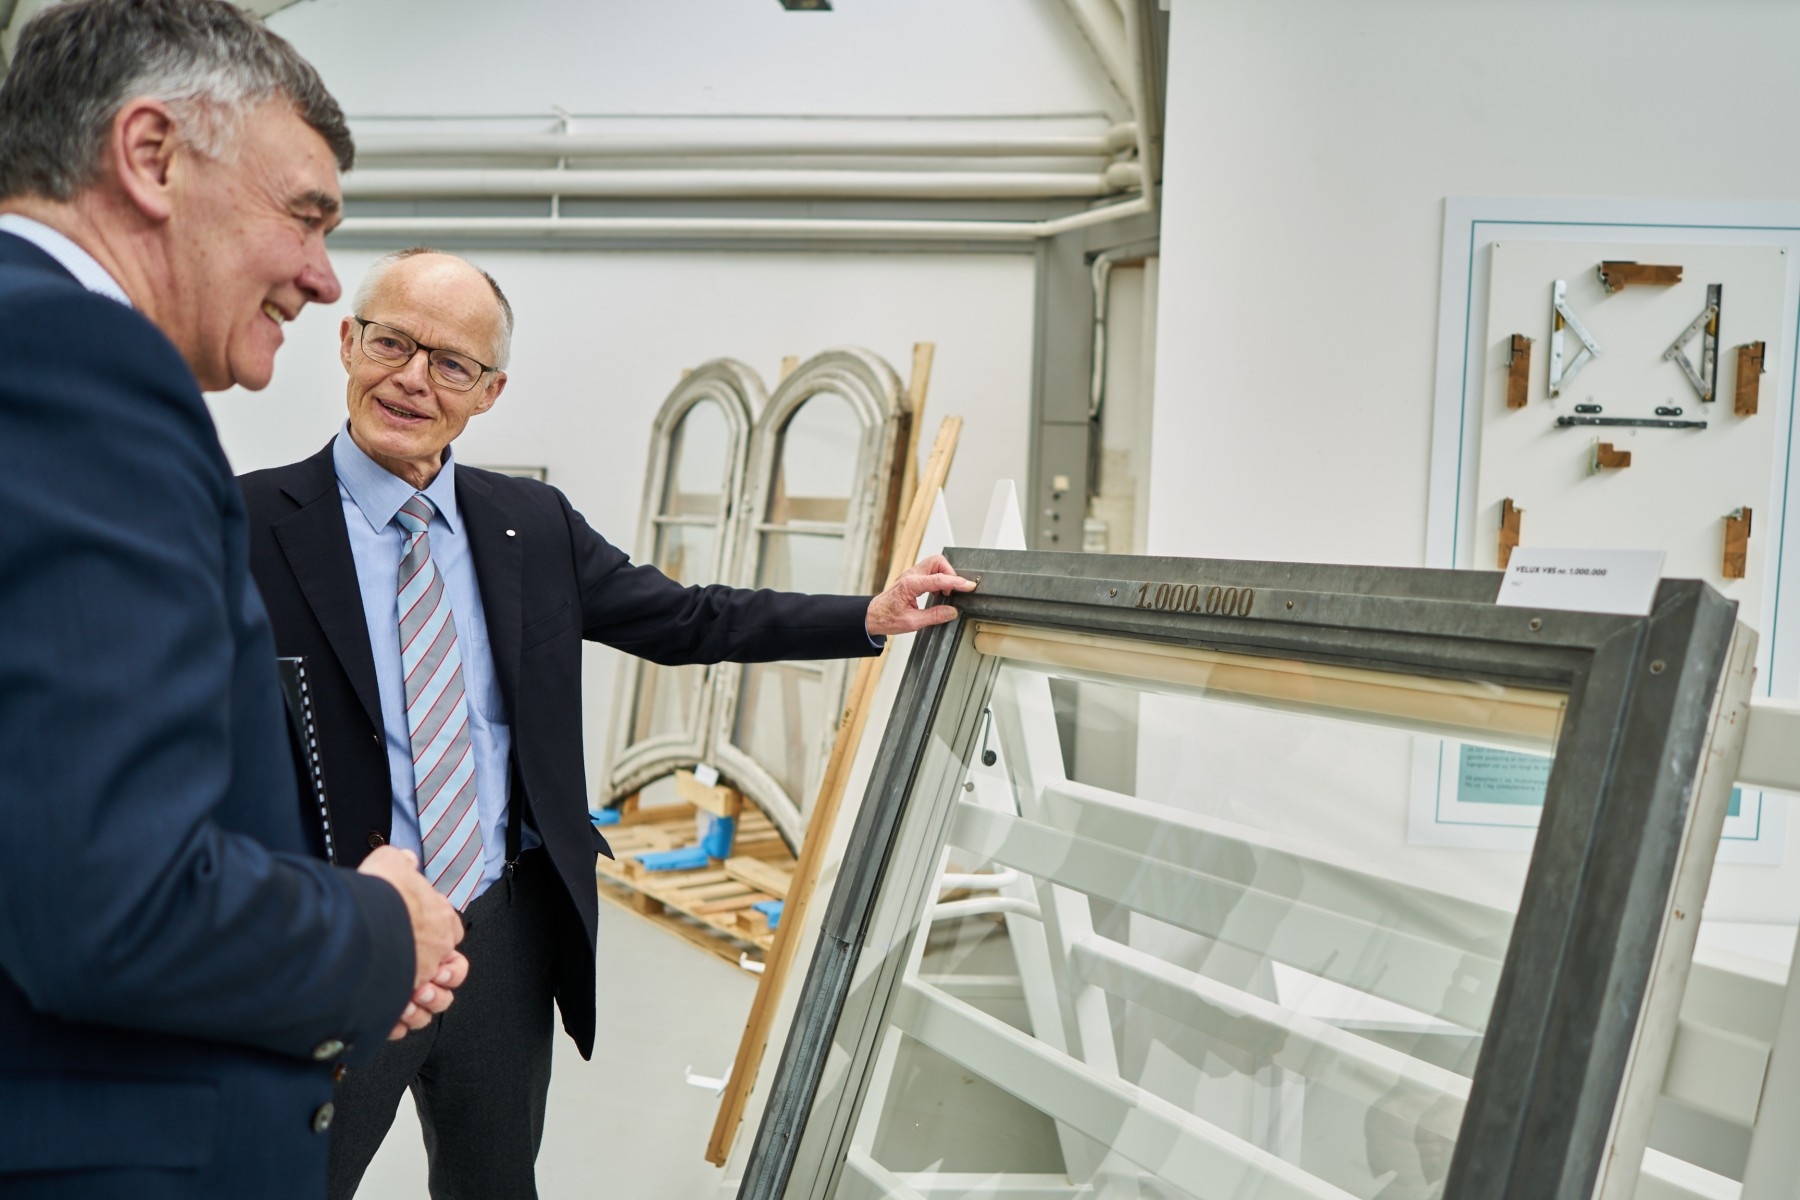 CEO of the VELUX Group, Jørgen Tang-Jensen (left), together with Lars Kann-Rasmussen